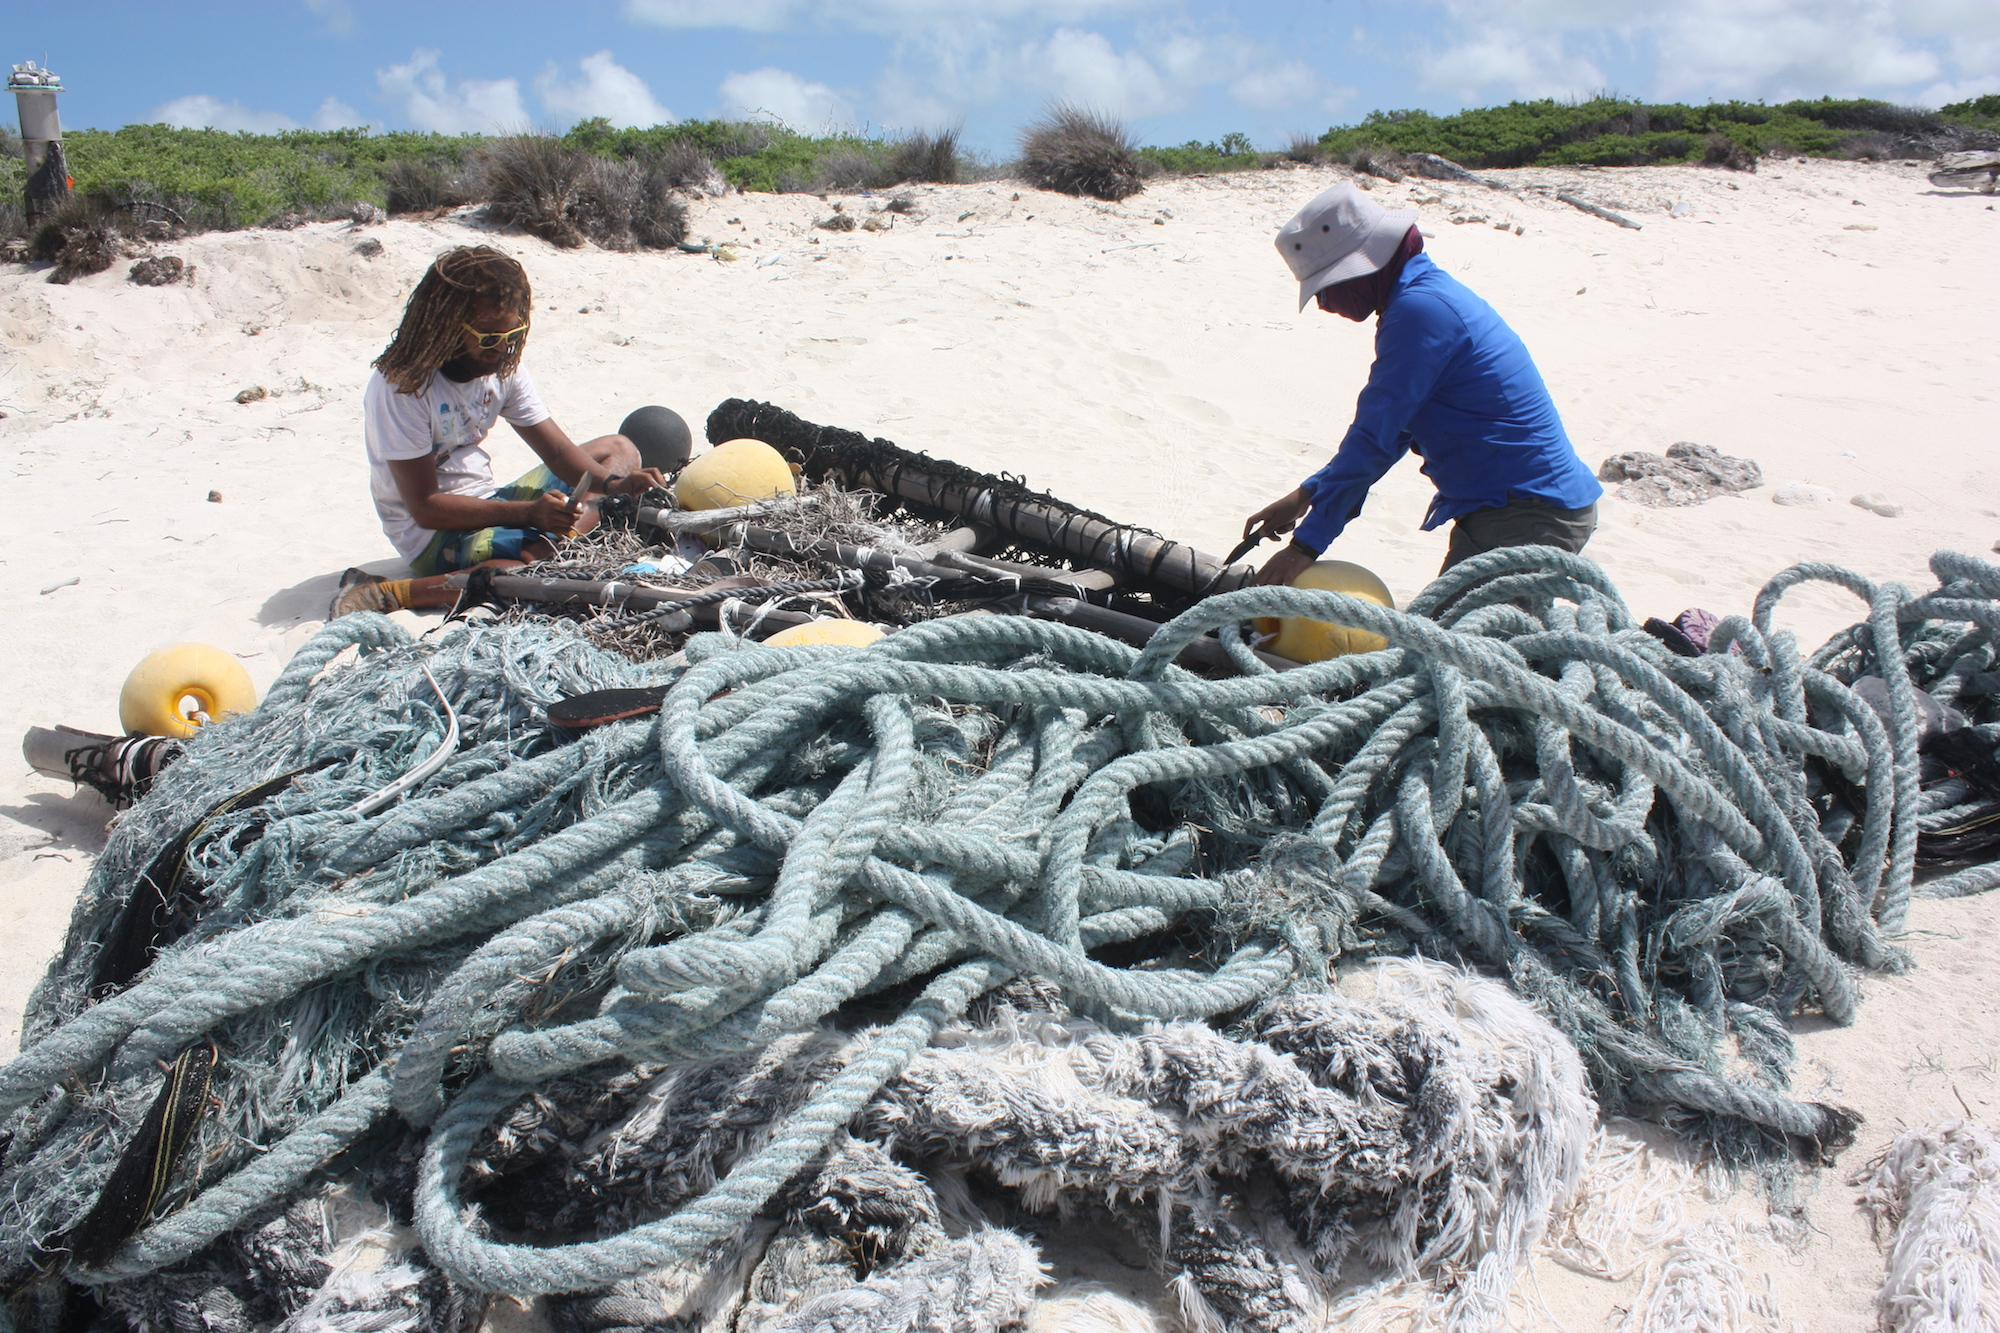 Jeremy Raguain, left, and Kalsey Belle, who took part in the 2019 cleaning drive on Aldabra, taking apart a beached FAD. Image Courtesy of April Burt.